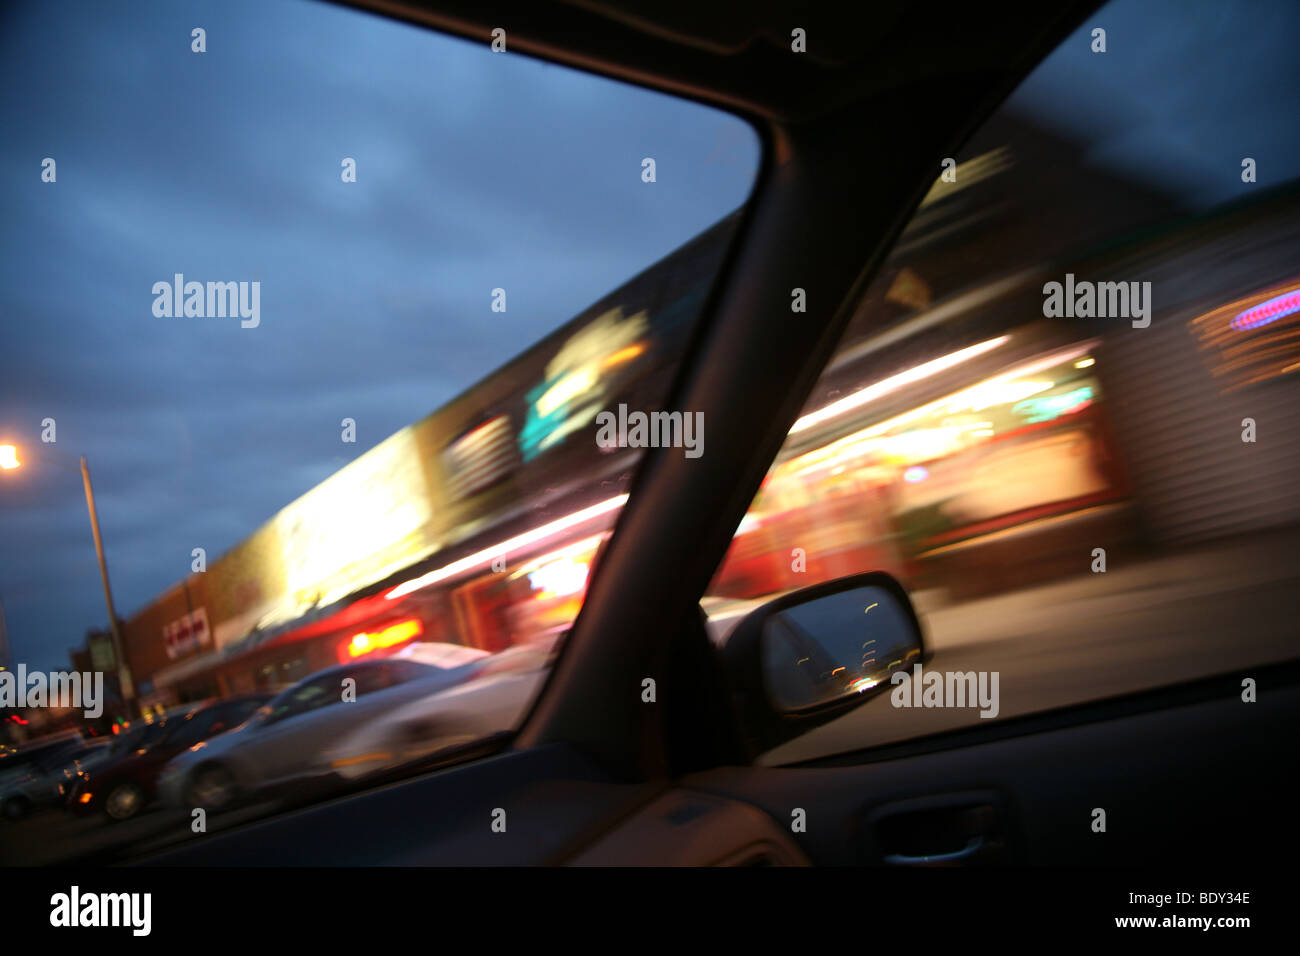 Car at night going down the road. Blurred city lights outside window. - Stock Image